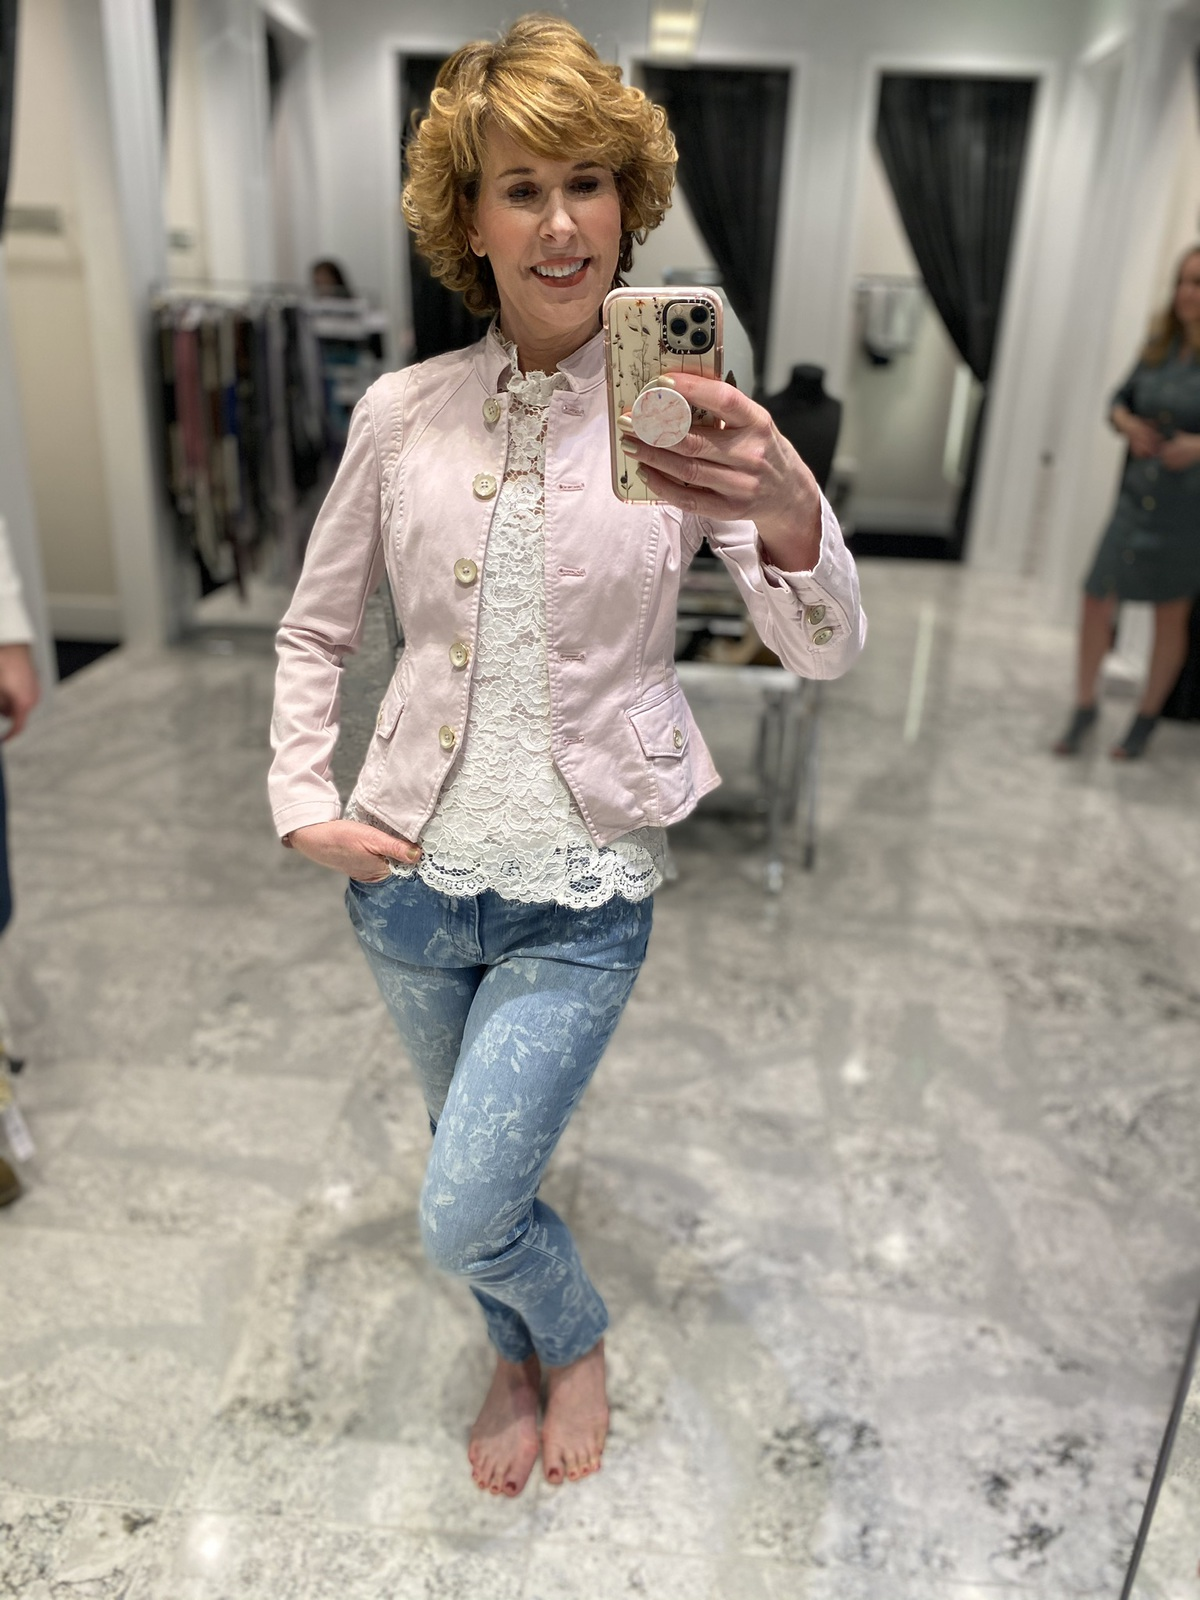 Mirror selfie of woman over 50 wearing white lace high neck top floral jeans pink pumps doing spring wardrobe update